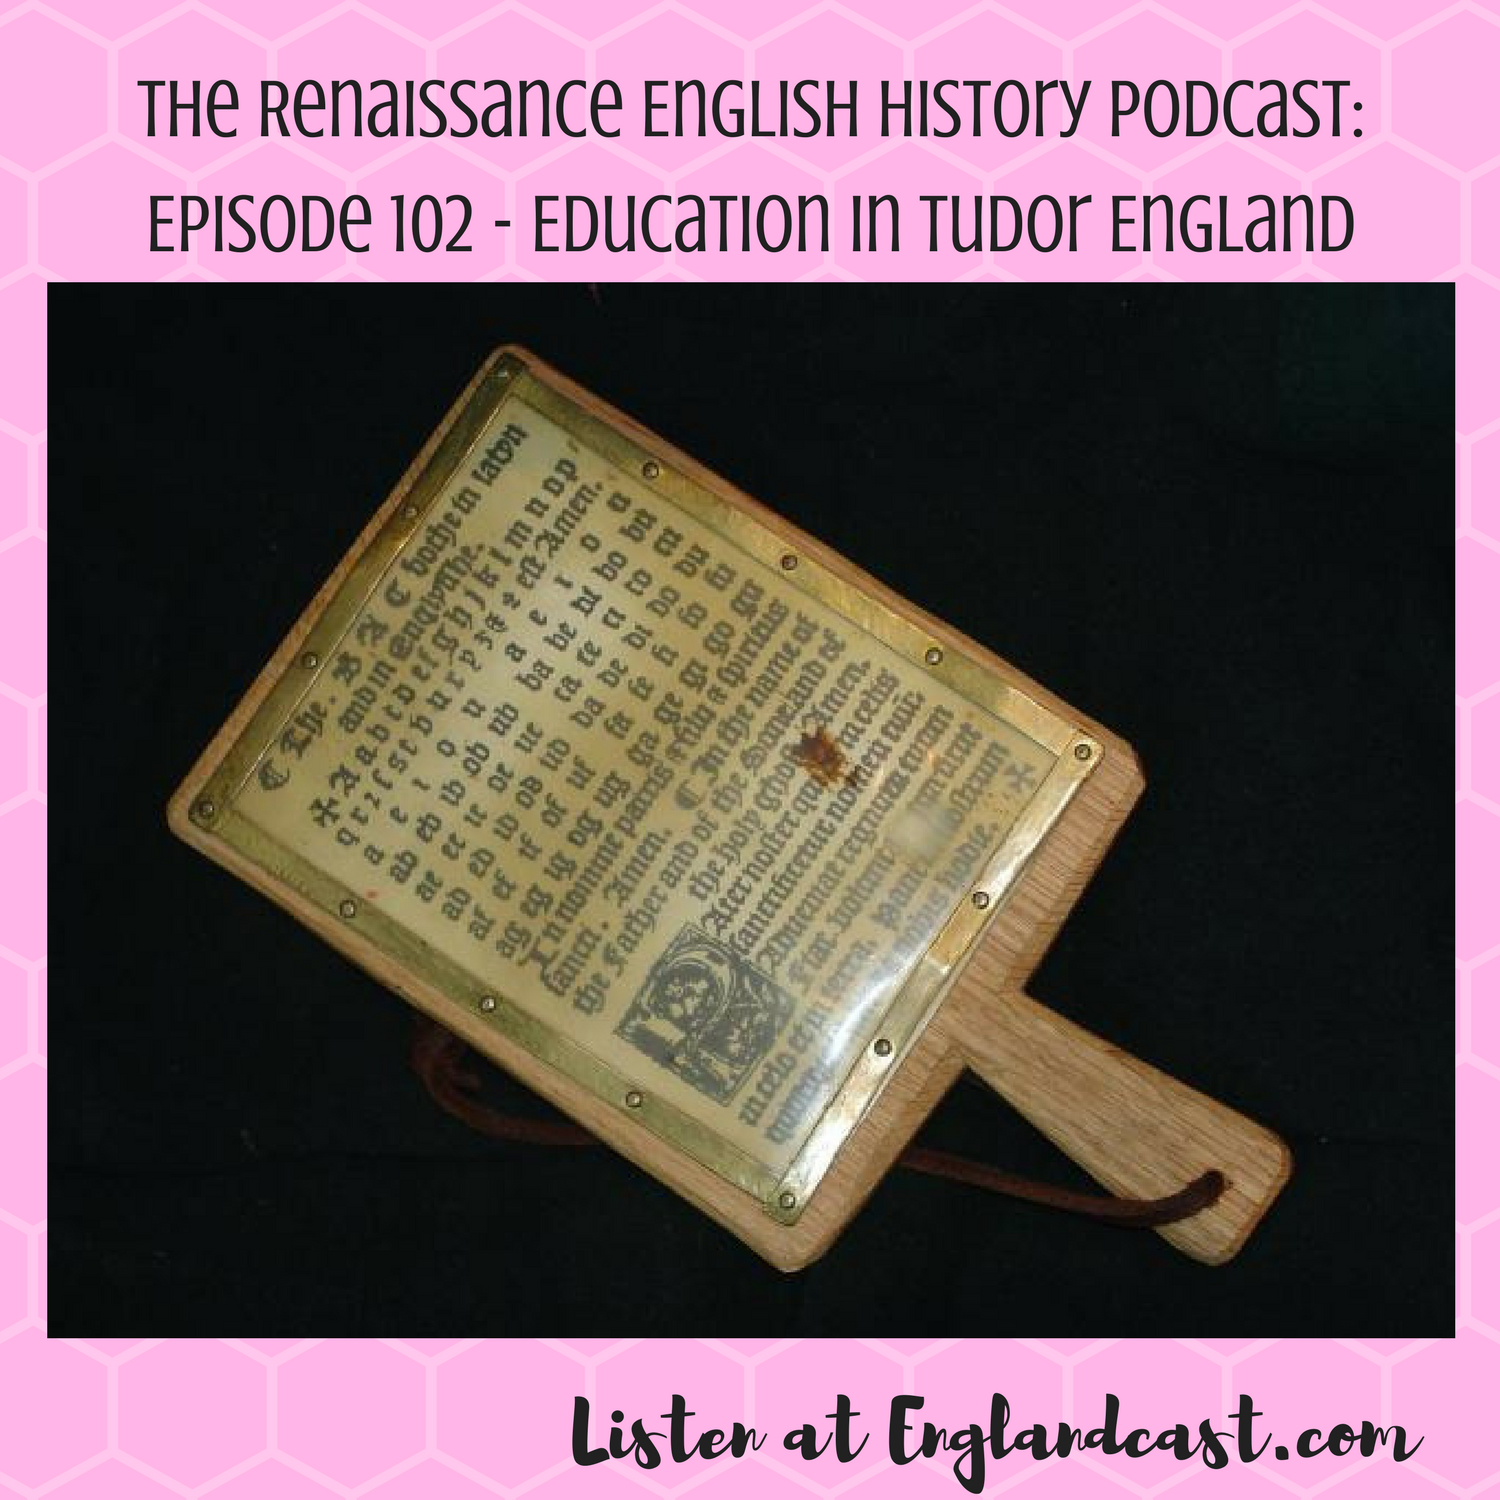 Episode 102: Education in Tudor England